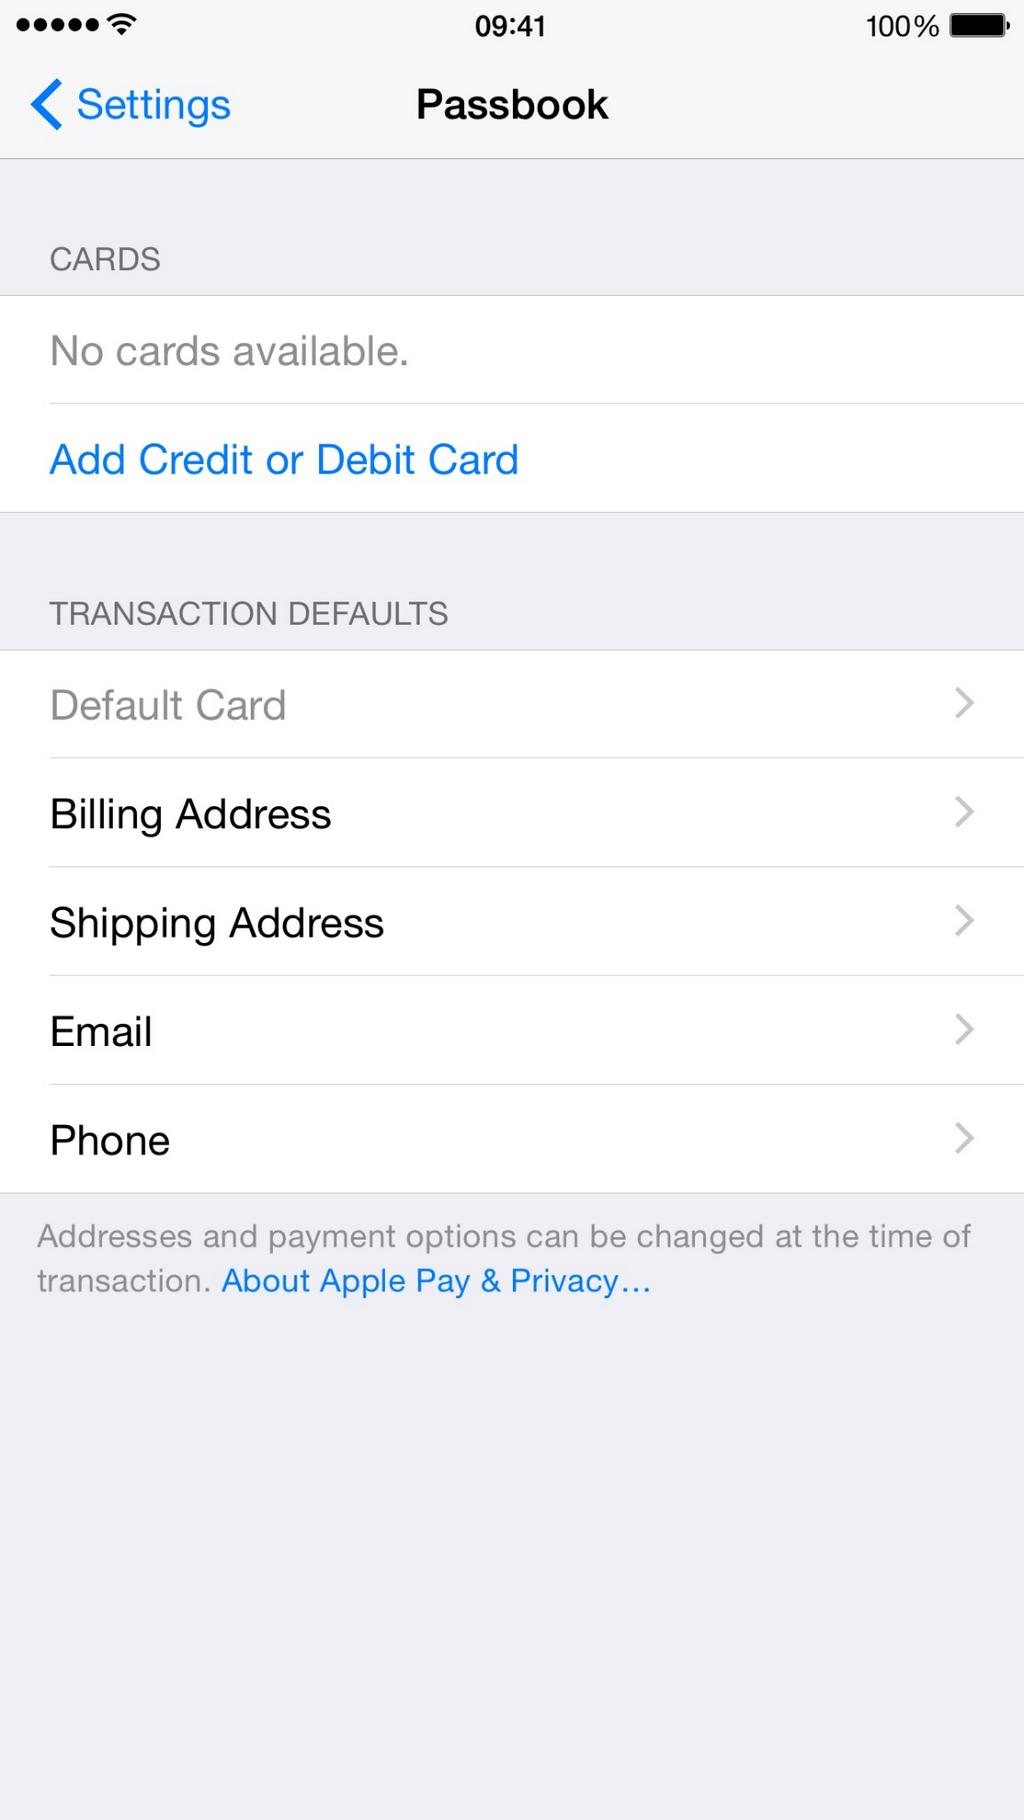 Apple Pay settings and reference to Touch ID on iPad found in iOS 8.1 beta